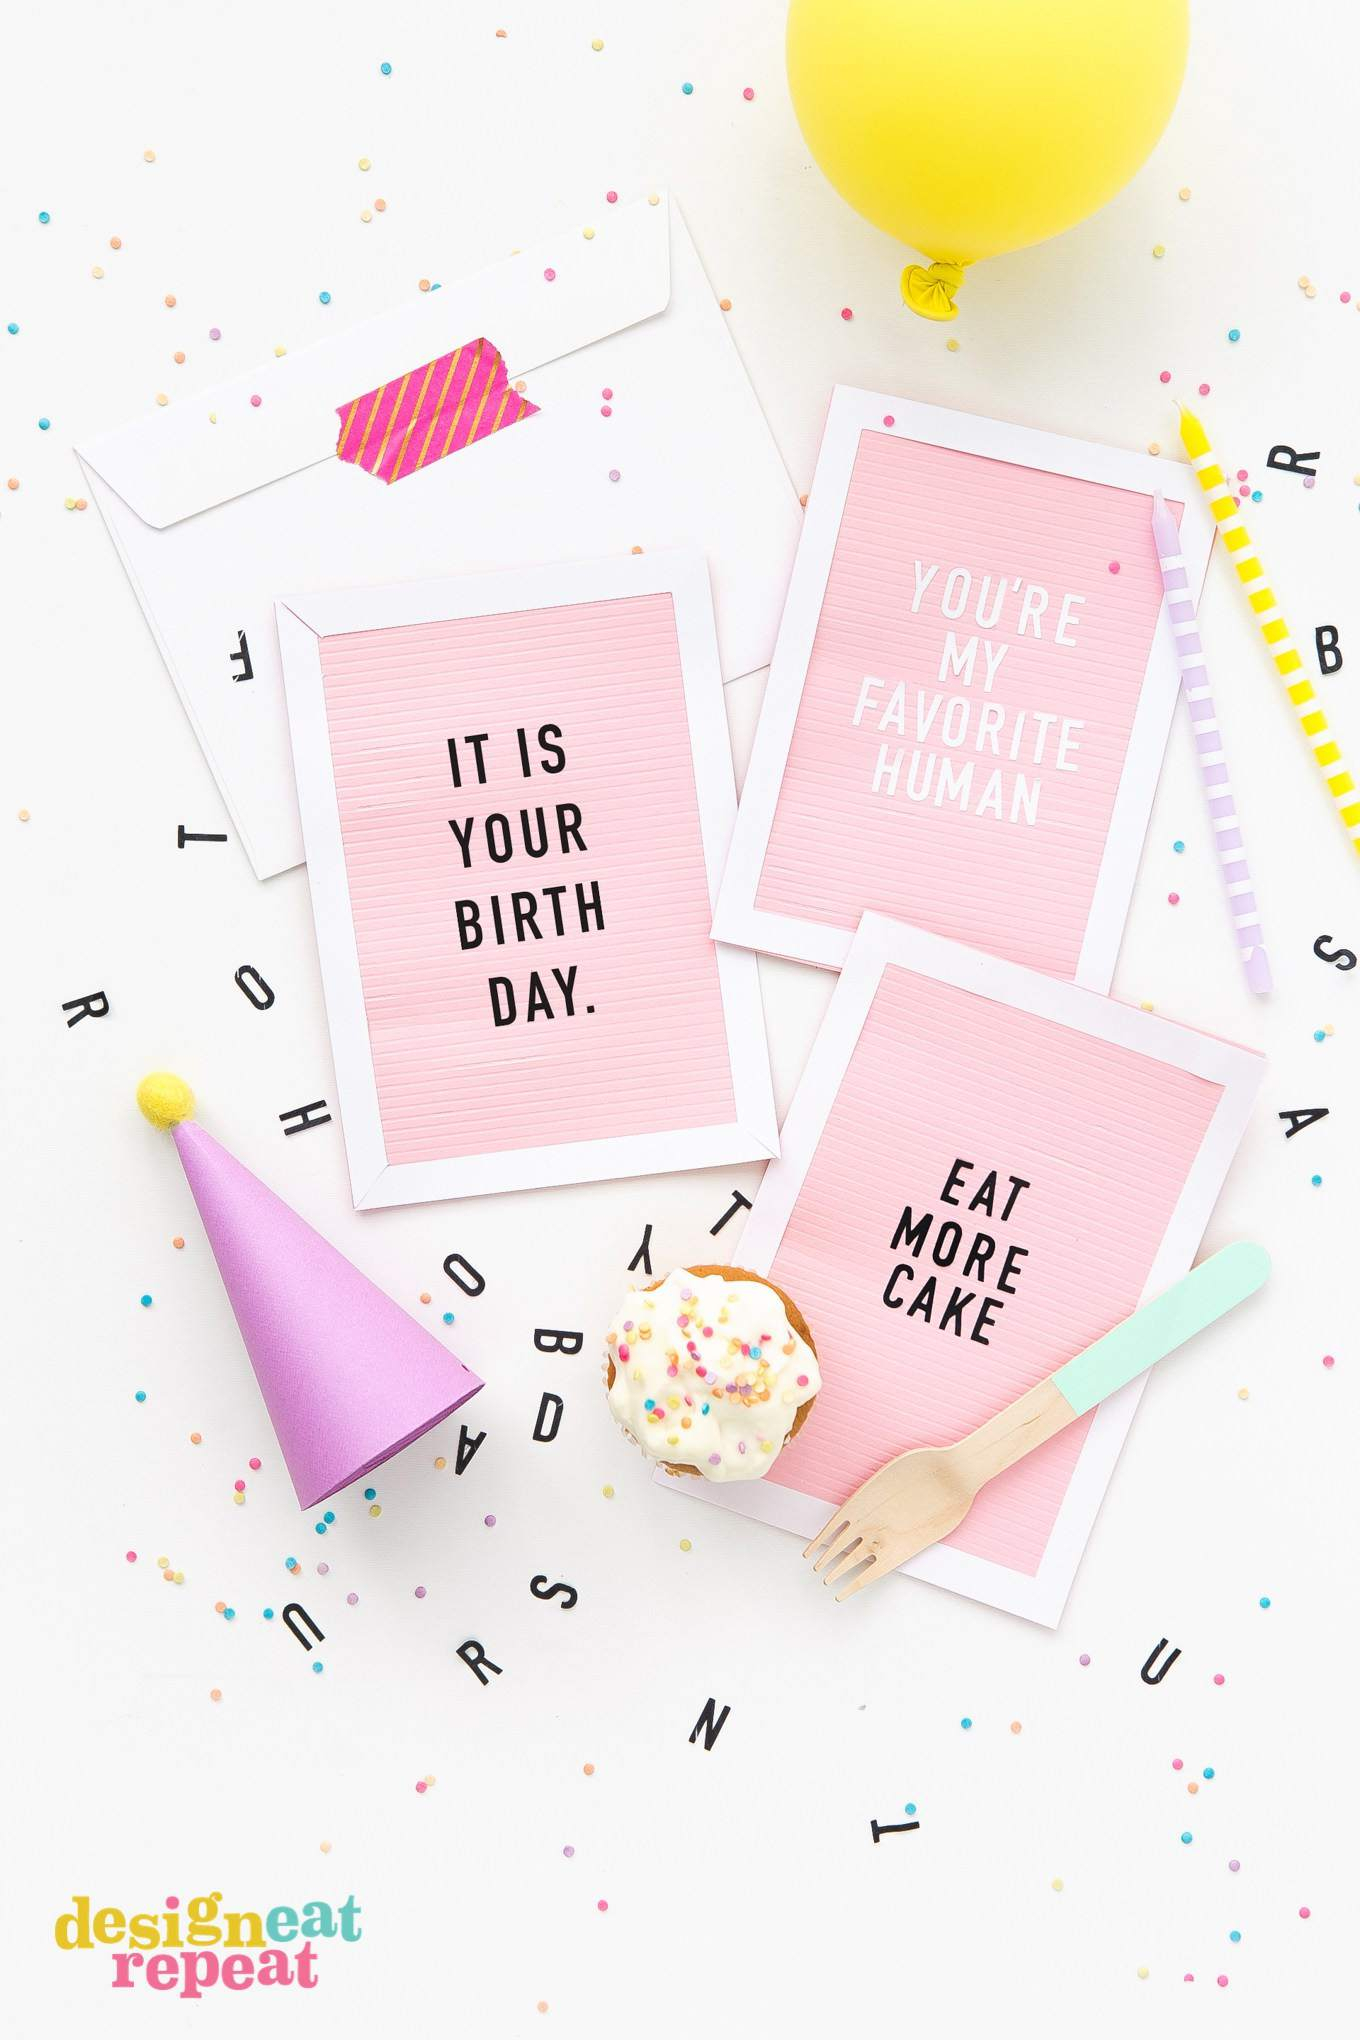 Happy Birthday Card Ideas For Dad Get Inspiration From 25 Of The Best Diy Birthday Cards